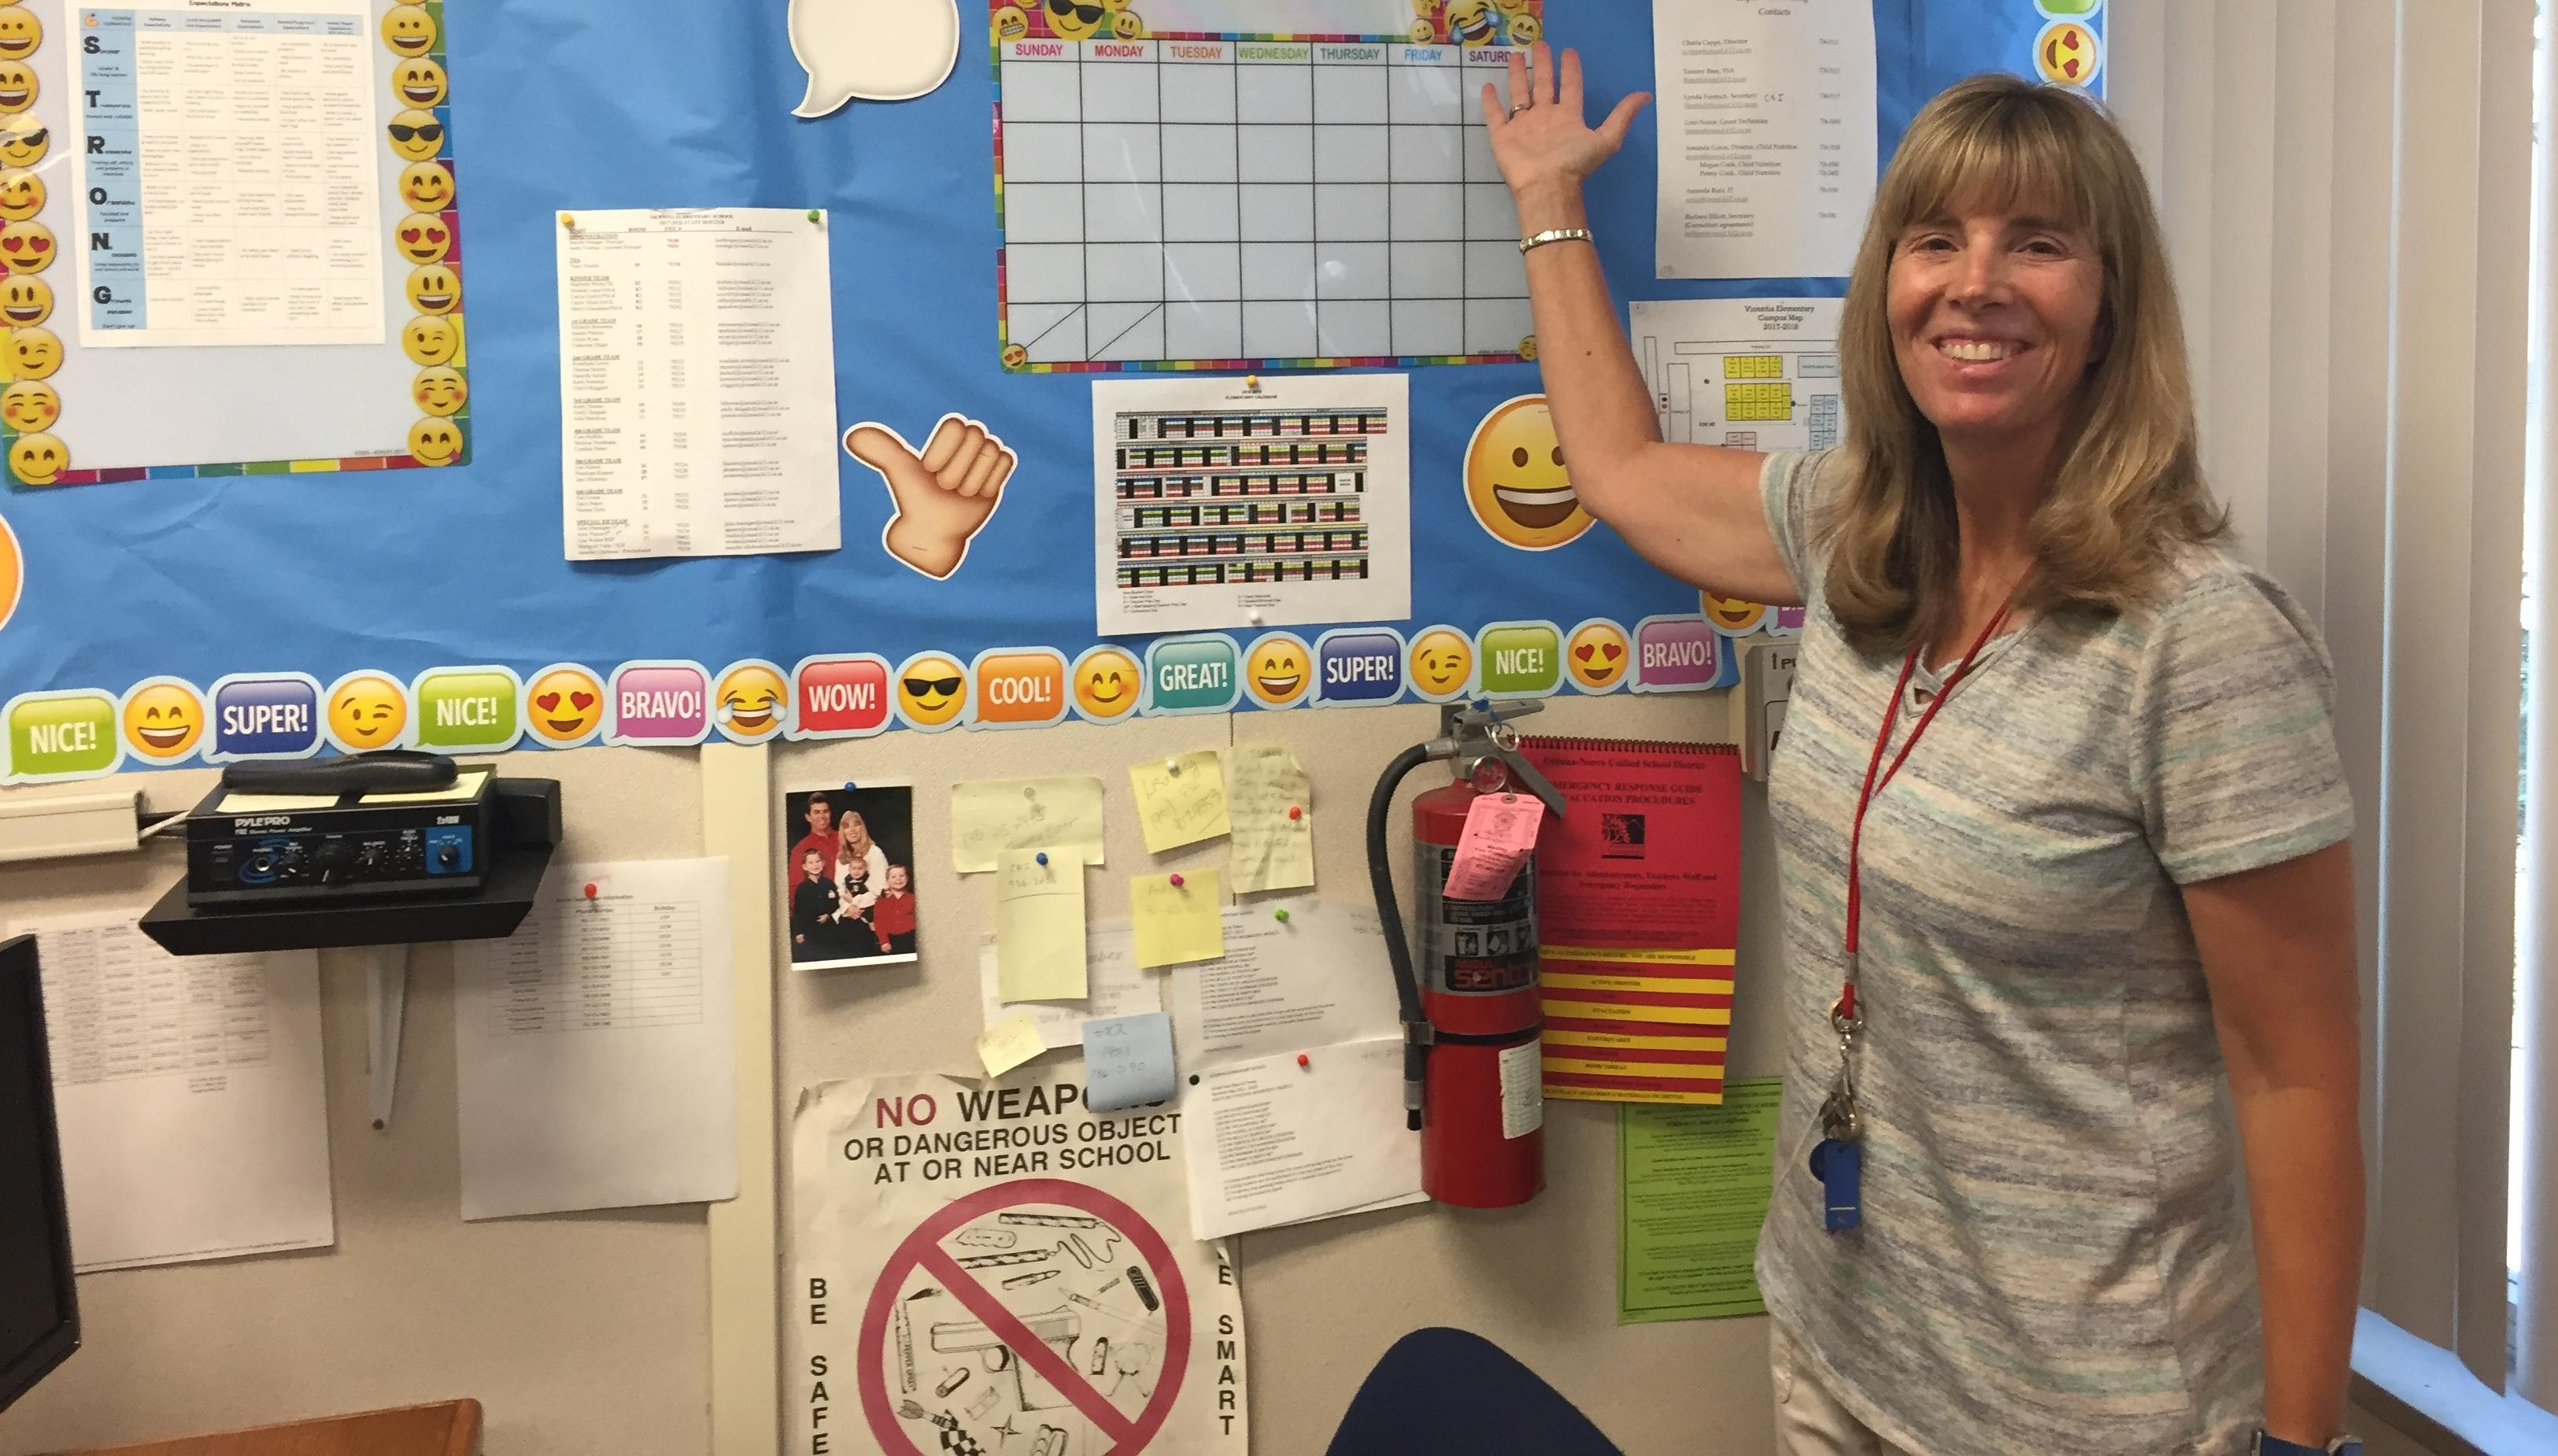 #CNUSDFacultyFriday: Meet Terry Mabry from Vicentia Elementary!